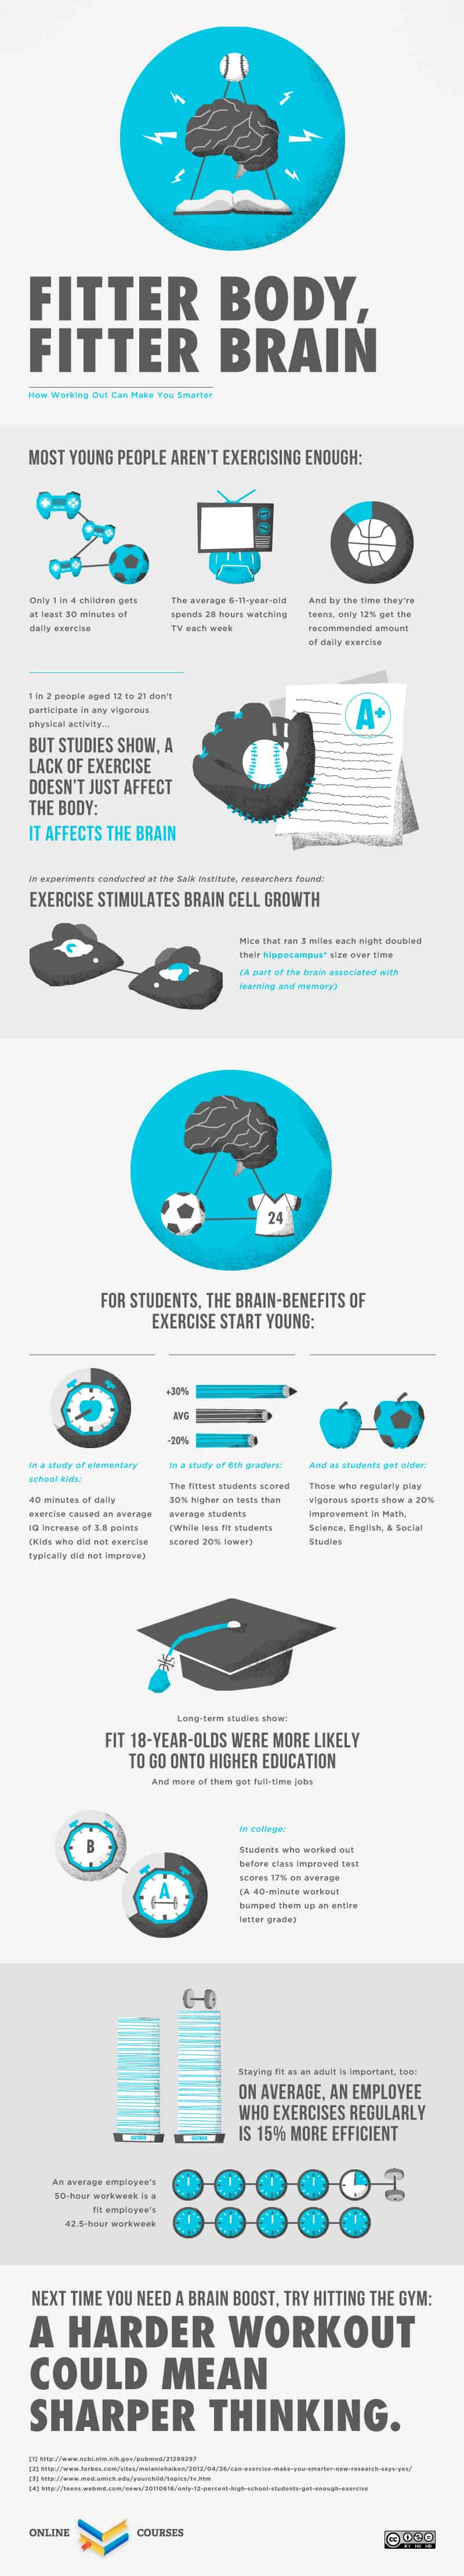 Fitter-Body-Fitter-Brain-Infographic